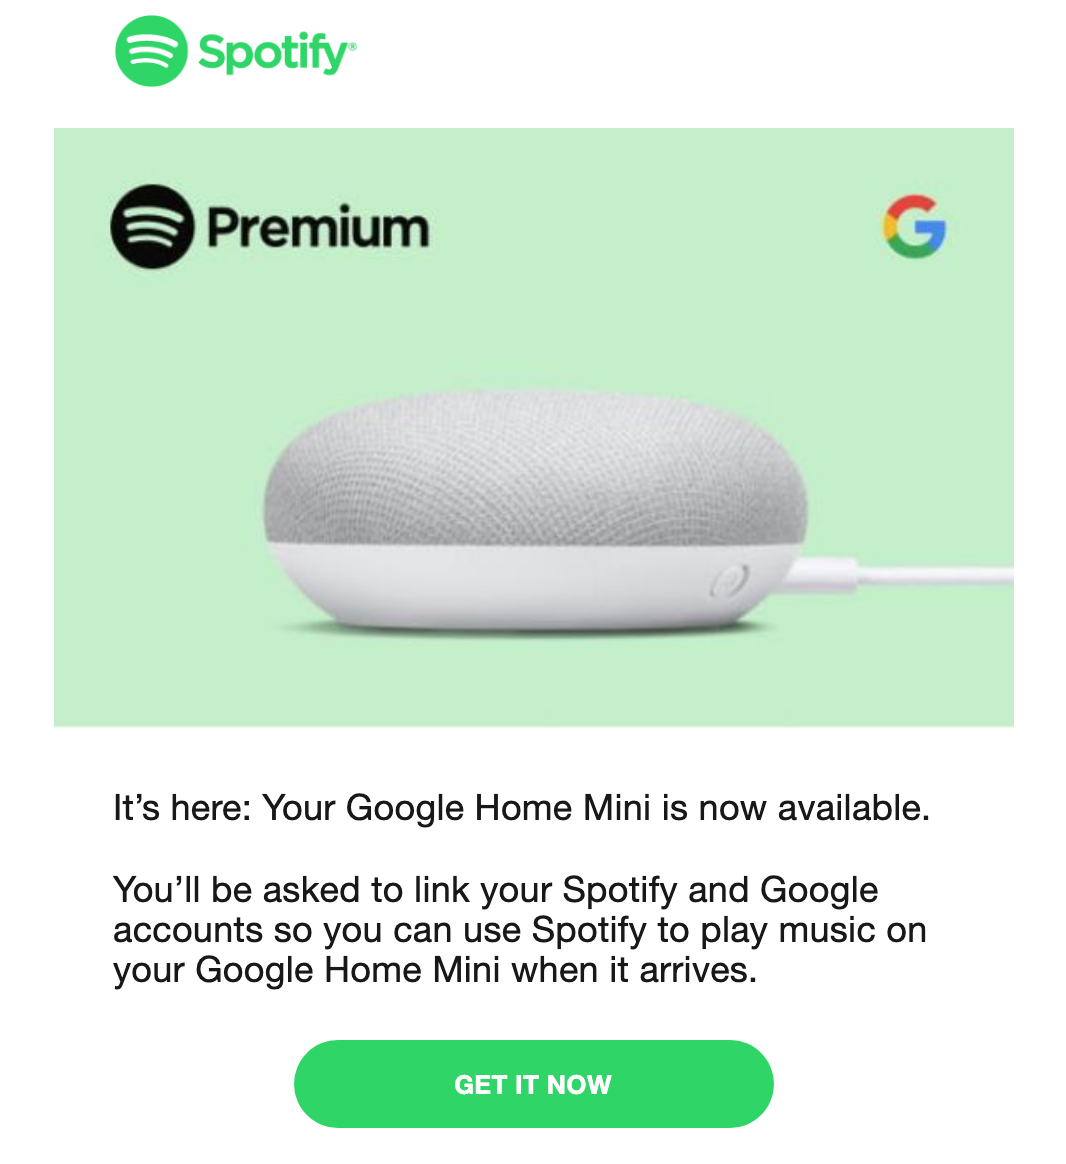 Free Google Home Mini - Just connect your Spotify account to Google.